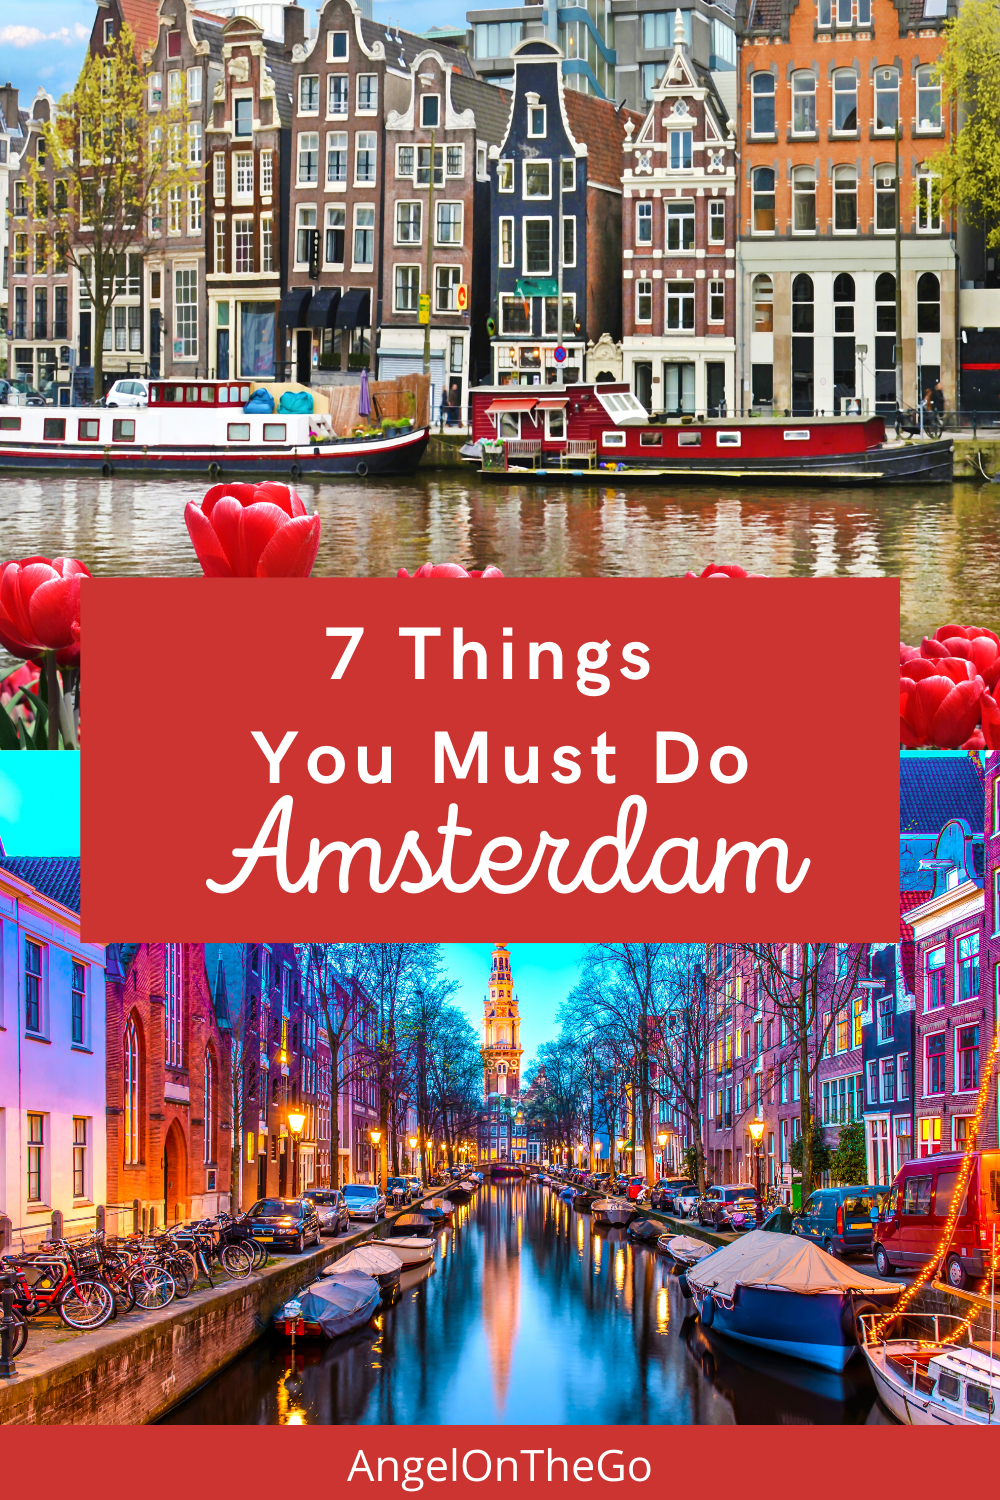 15 Best Things To Do In Amsterdam Conde Nast Traveler 4